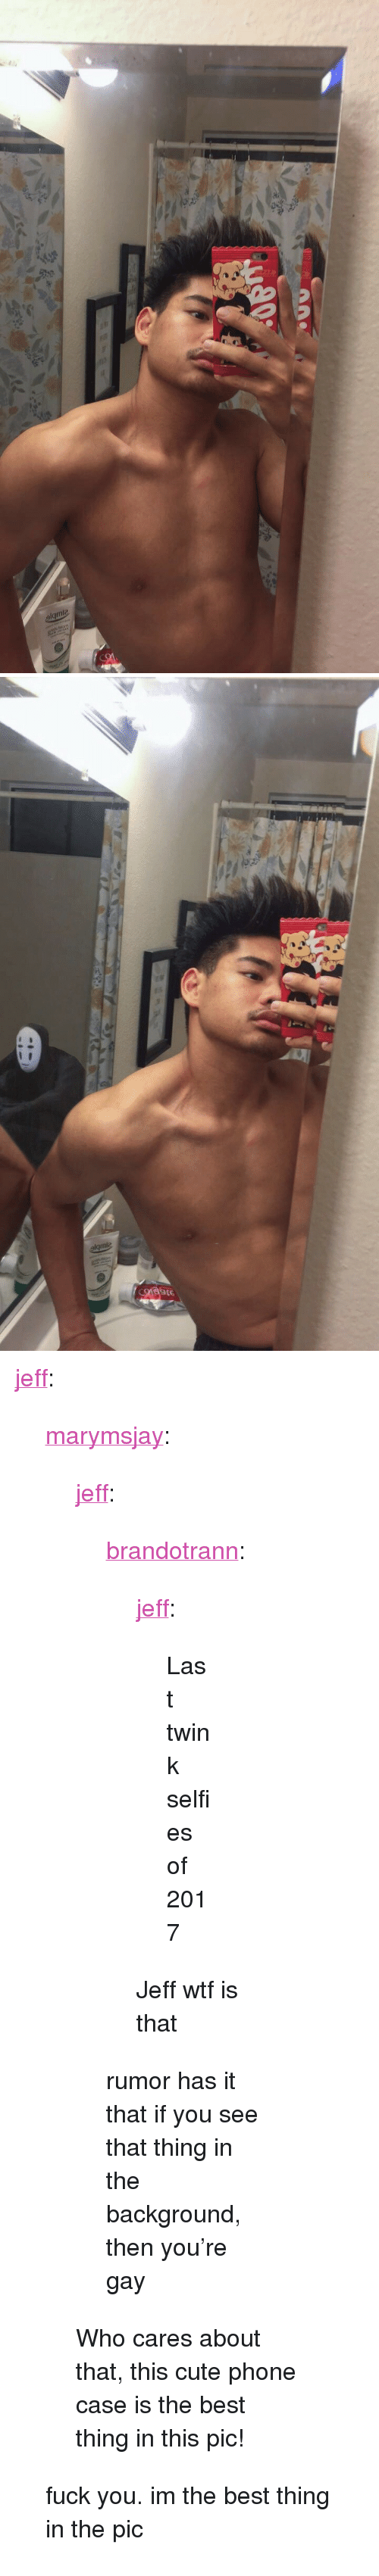 "Wtf Is That: <p><a href=""http://jeff.tumblr.com/post/168419643507/marymsjay-jeff-brandotrann-jeff-last"" class=""tumblr_blog"">jeff</a>:</p><blockquote> <p><a href=""http://marymsjay.tumblr.com/post/168397537841/jeff-brandotrann-jeff-last-twink-selfies"" class=""tumblr_blog"">marymsjay</a>:</p> <blockquote> <p><a href=""http://jeff.tumblr.com/post/168275545792/brandotrann-jeff-last-twink-selfies-of-2017"" class=""tumblr_blog"">jeff</a>:</p>  <blockquote> <p><a href=""http://brandotrann.tumblr.com/post/168275496771/jeff-last-twink-selfies-of-2017-jeff-wtf-is"" class=""tumblr_blog"">brandotrann</a>:</p> <blockquote> <p><a href=""http://jeff.tumblr.com/post/168275203347/last-twink-selfies-of-2017"" class=""tumblr_blog"">jeff</a>:</p> <blockquote><p>Last twink selfies of 2017</p></blockquote> <p>Jeff wtf is that </p> </blockquote> <p>rumor has it that if you see that thing in the background, then you're gay</p> </blockquote>  <p>Who cares about that, this cute phone case is the best thing in this pic!</p> </blockquote> <p>fuck you. im the best thing in the pic </p> </blockquote>"